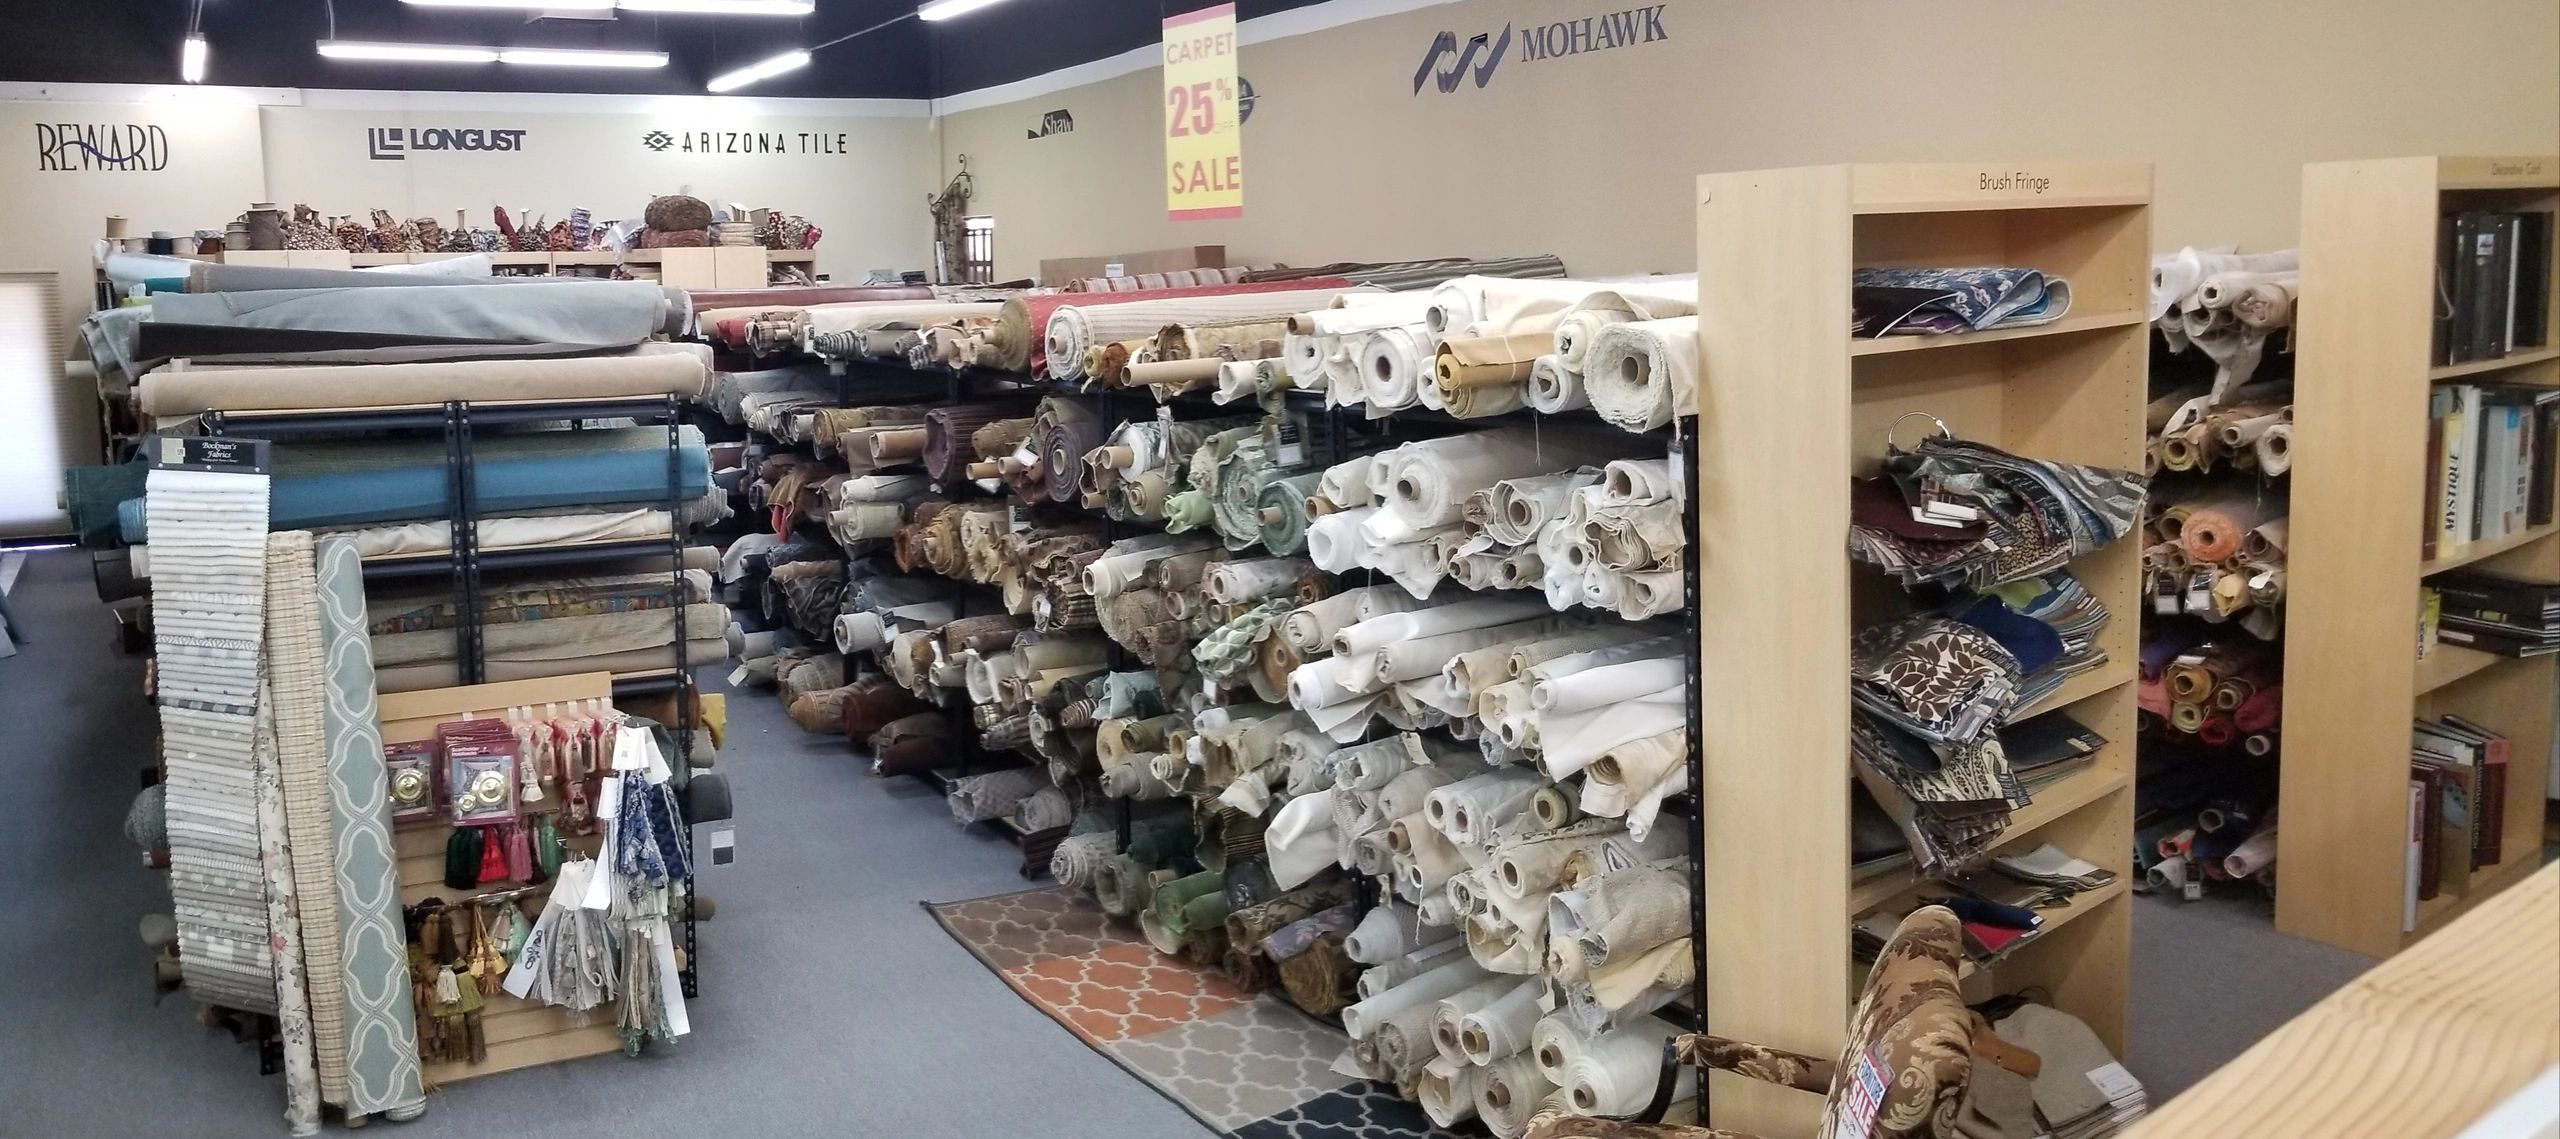 "{""blocks"":[{""key"":""6ld8q"",""text"":"" We also carry thousands of fabrics in stock! Searching for that one special fabric? We have it! "",""type"":""unstyled"",""depth"":0,""inlineStyleRanges"":[{""offset"":1,""length"":95,""style"":""BOLD""}],""entityRanges"":[],""data"":{}}],""entityMap"":{}}"